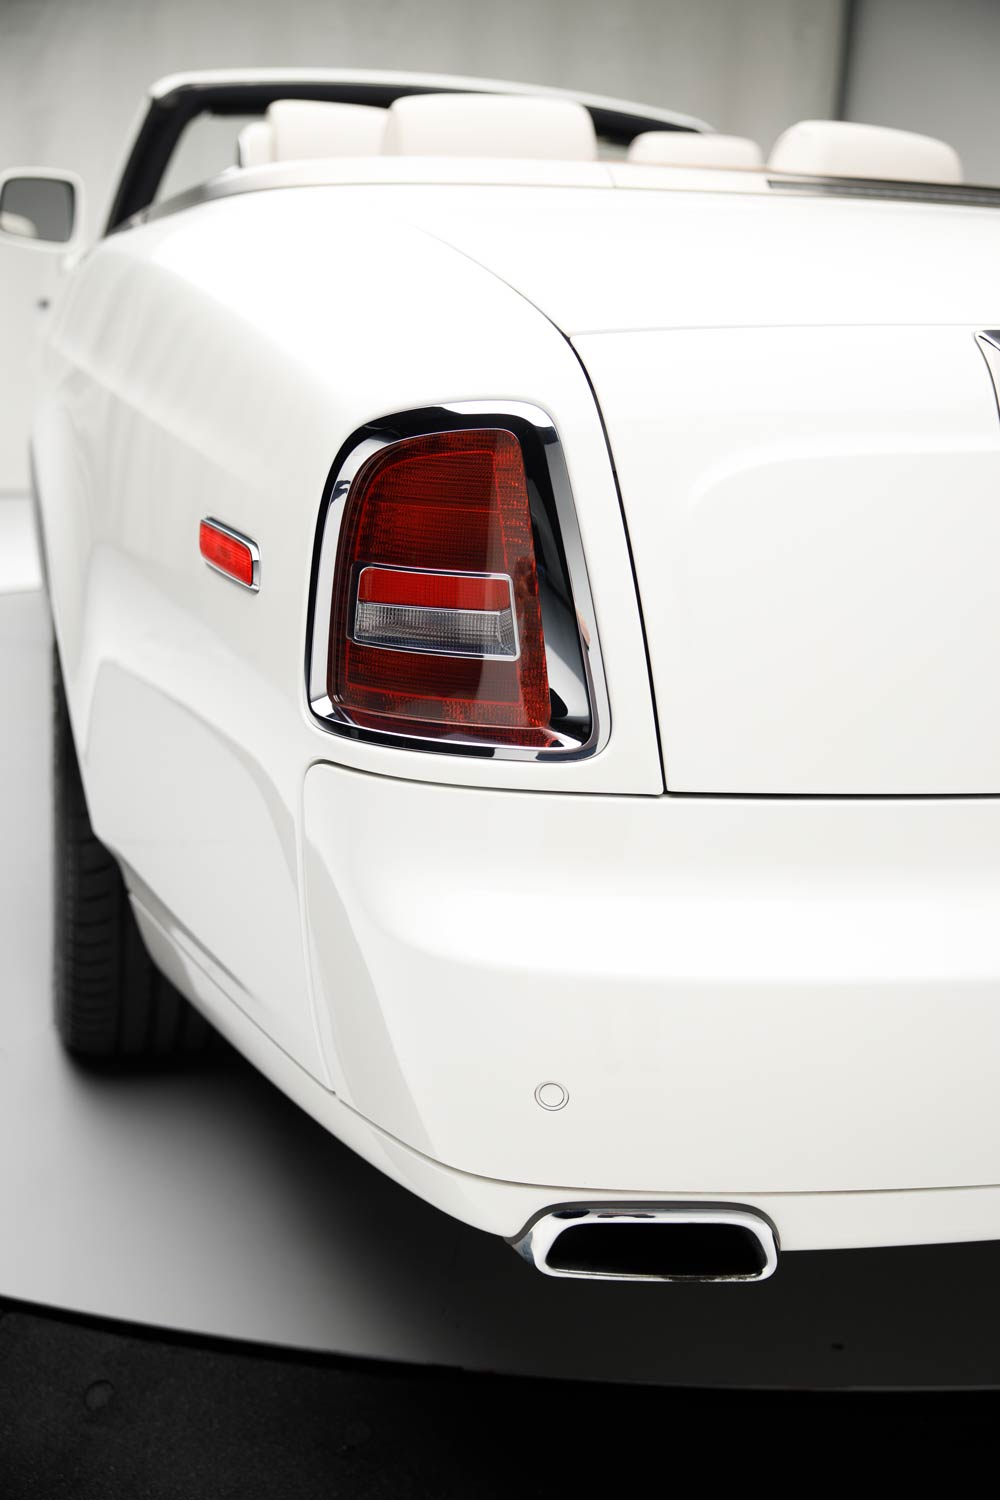 2011 Rolls-Royce Phantom Drophead Coupe - The JBS Collection